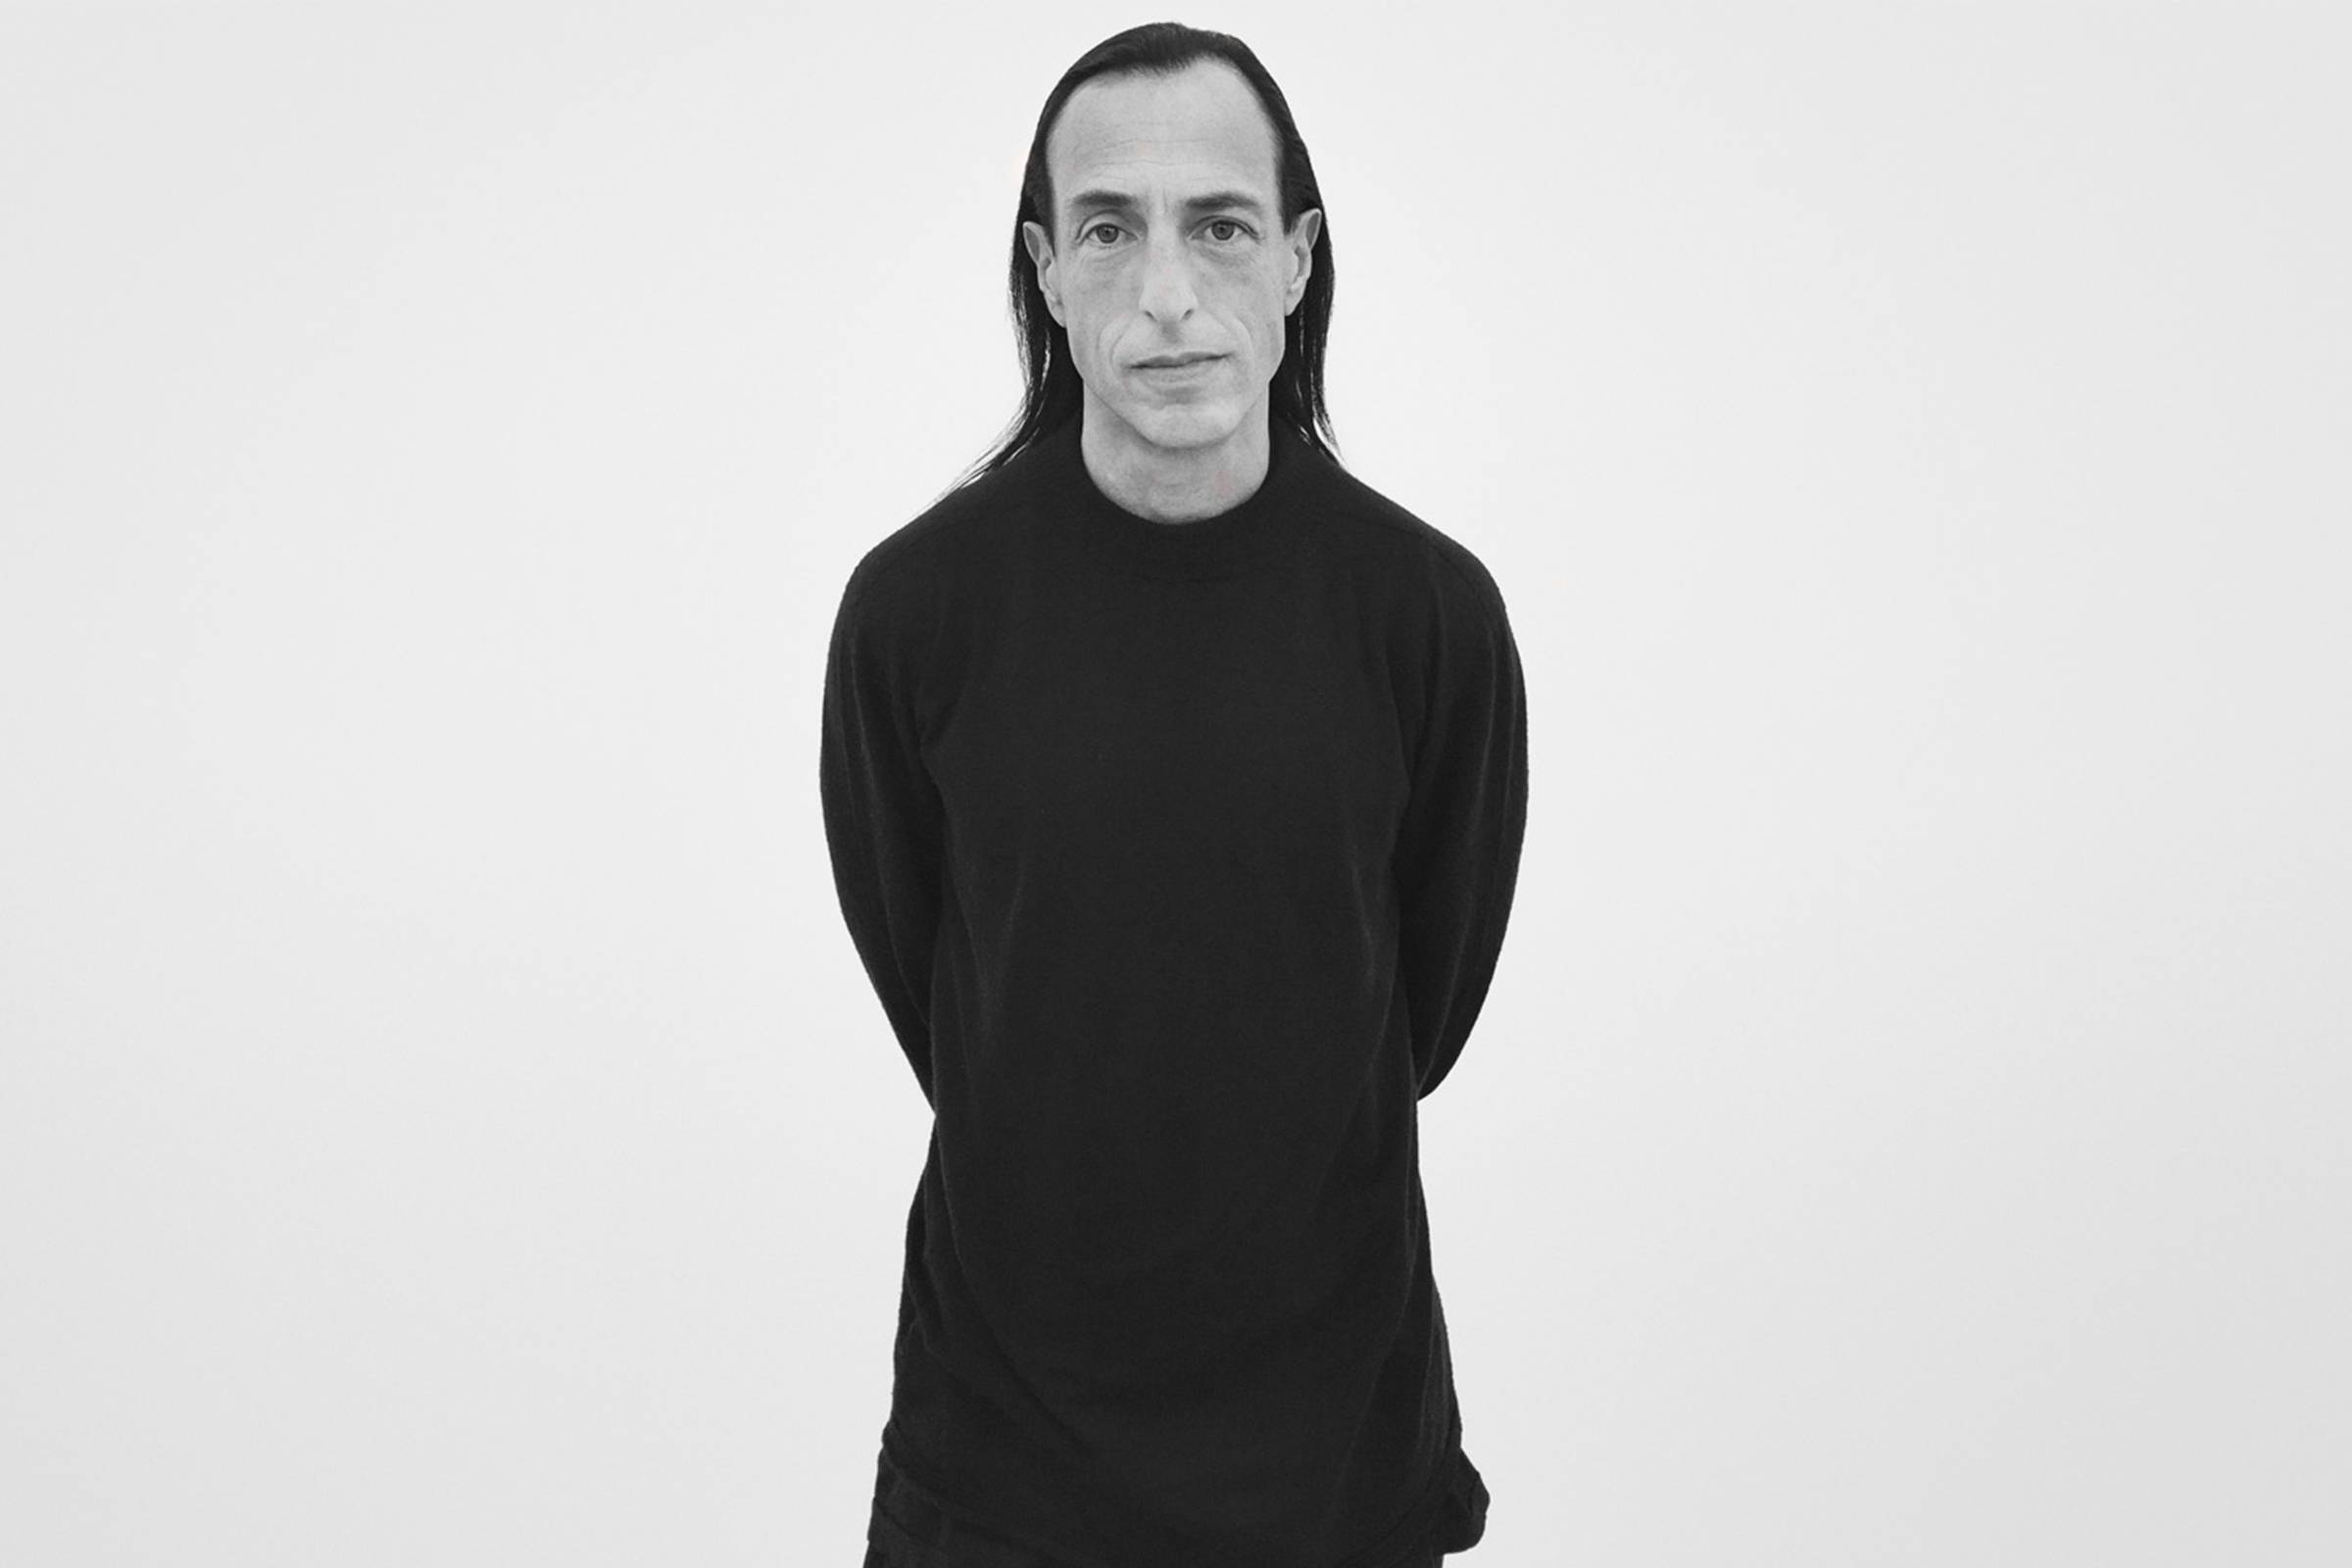 Fashion Designers Like Rick Owens